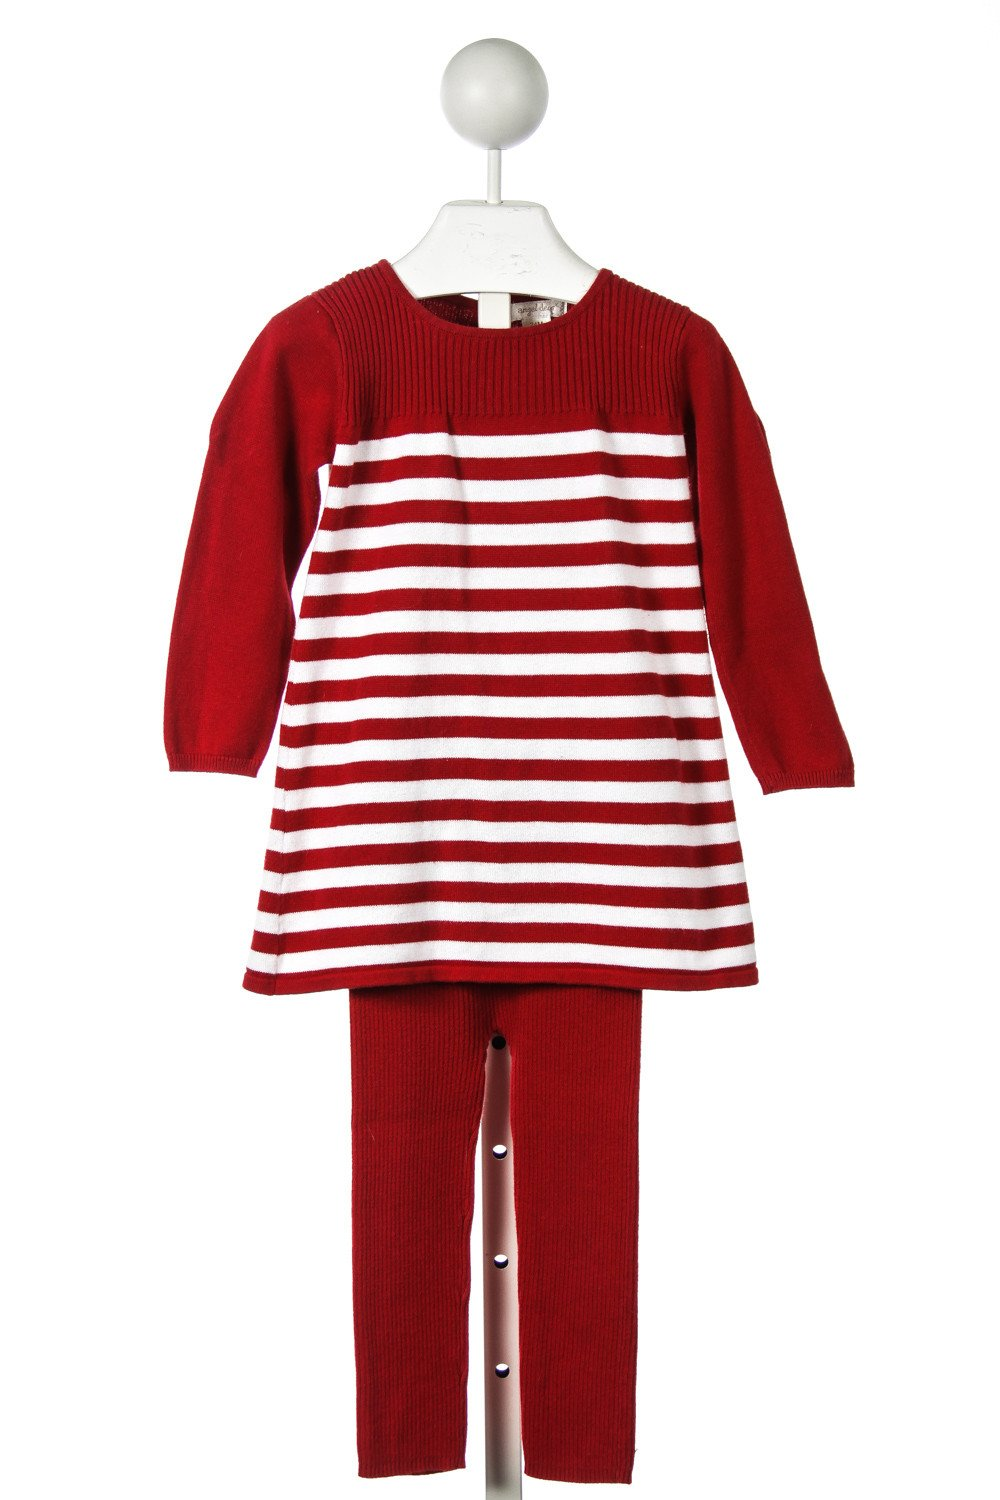 0399d266bc65 ANGEL DEAR RED AND WHITE STRIPED SWEATER SET